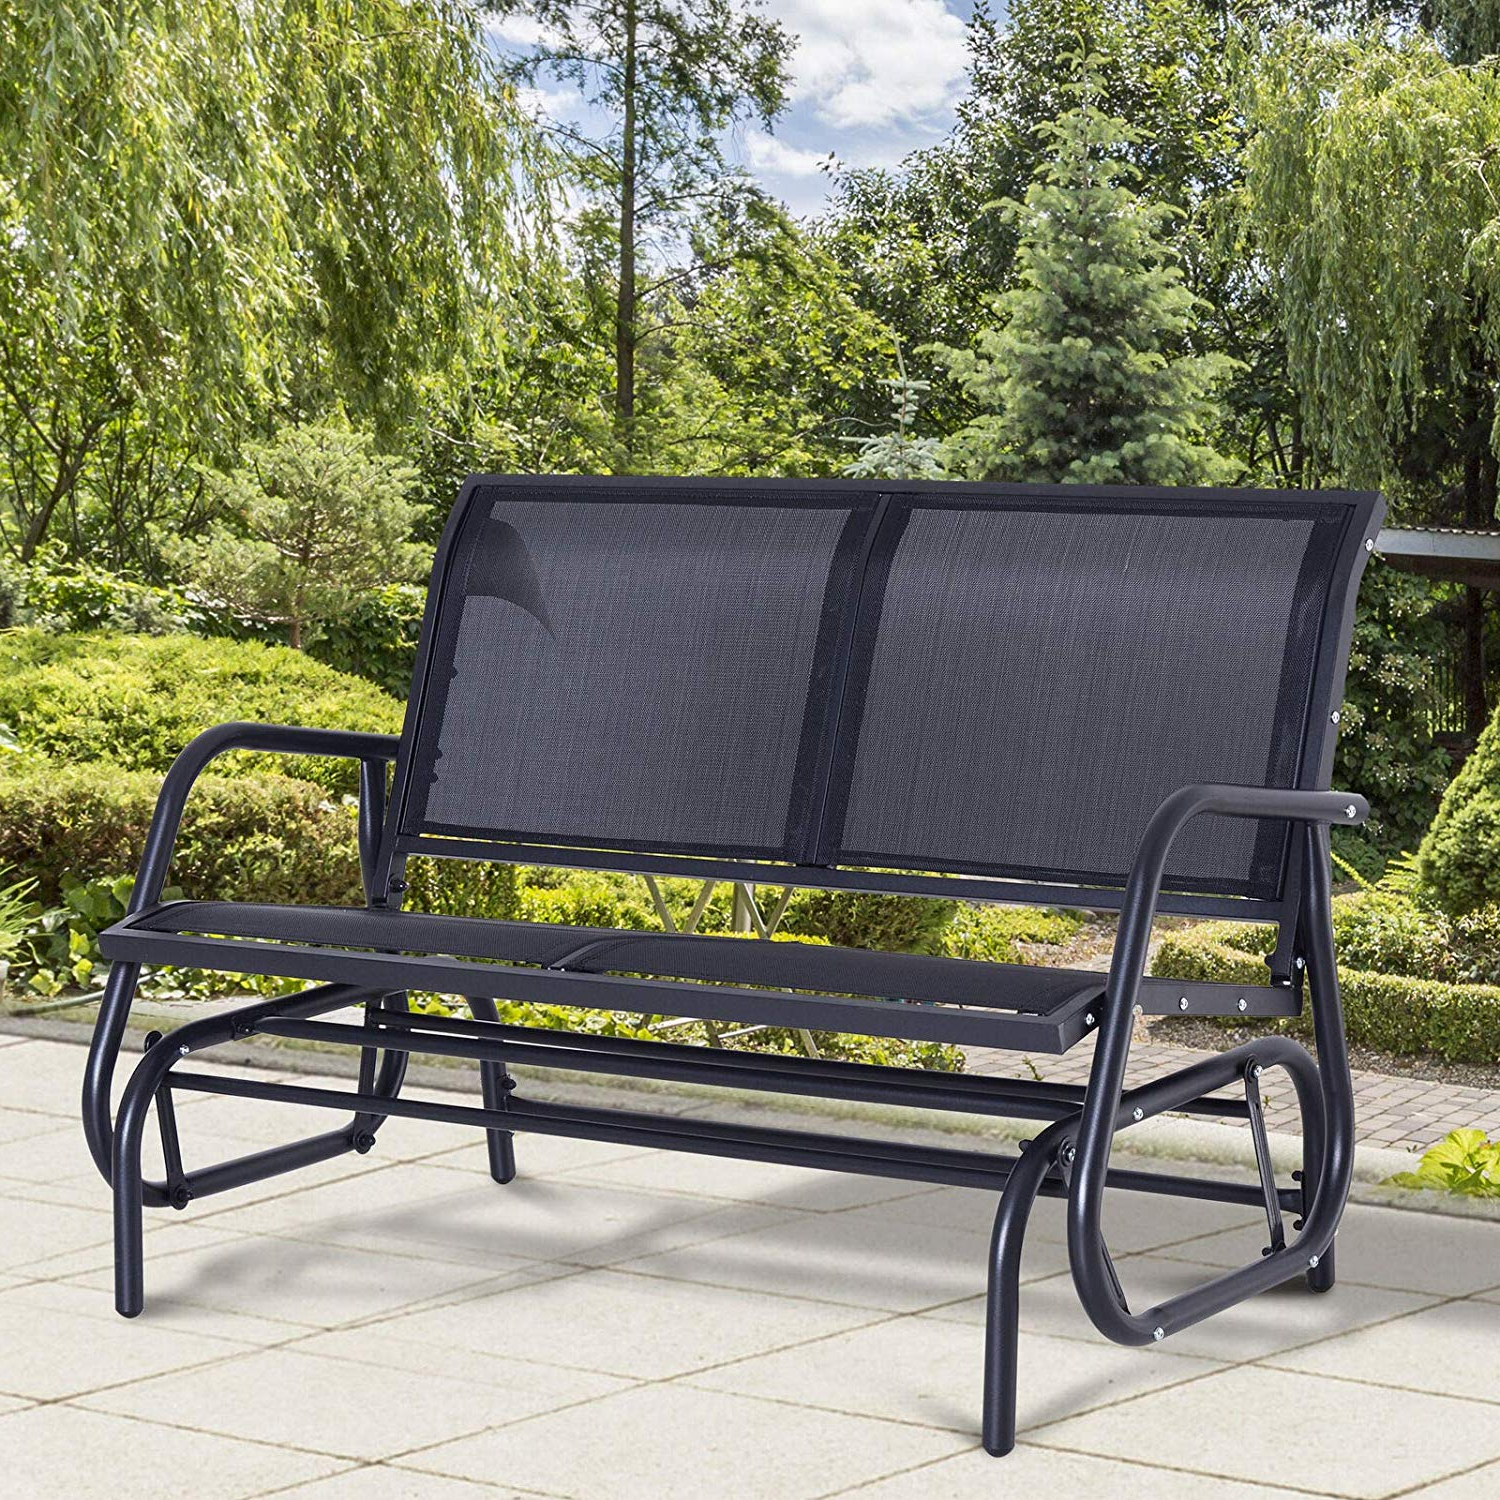 Most Recently Released Black Outdoor Durable Steel Frame Patio Swing Glider Bench Chairs With Regard To Amazon : Ana Store Casual Entertaining Flexible Quake (View 18 of 30)